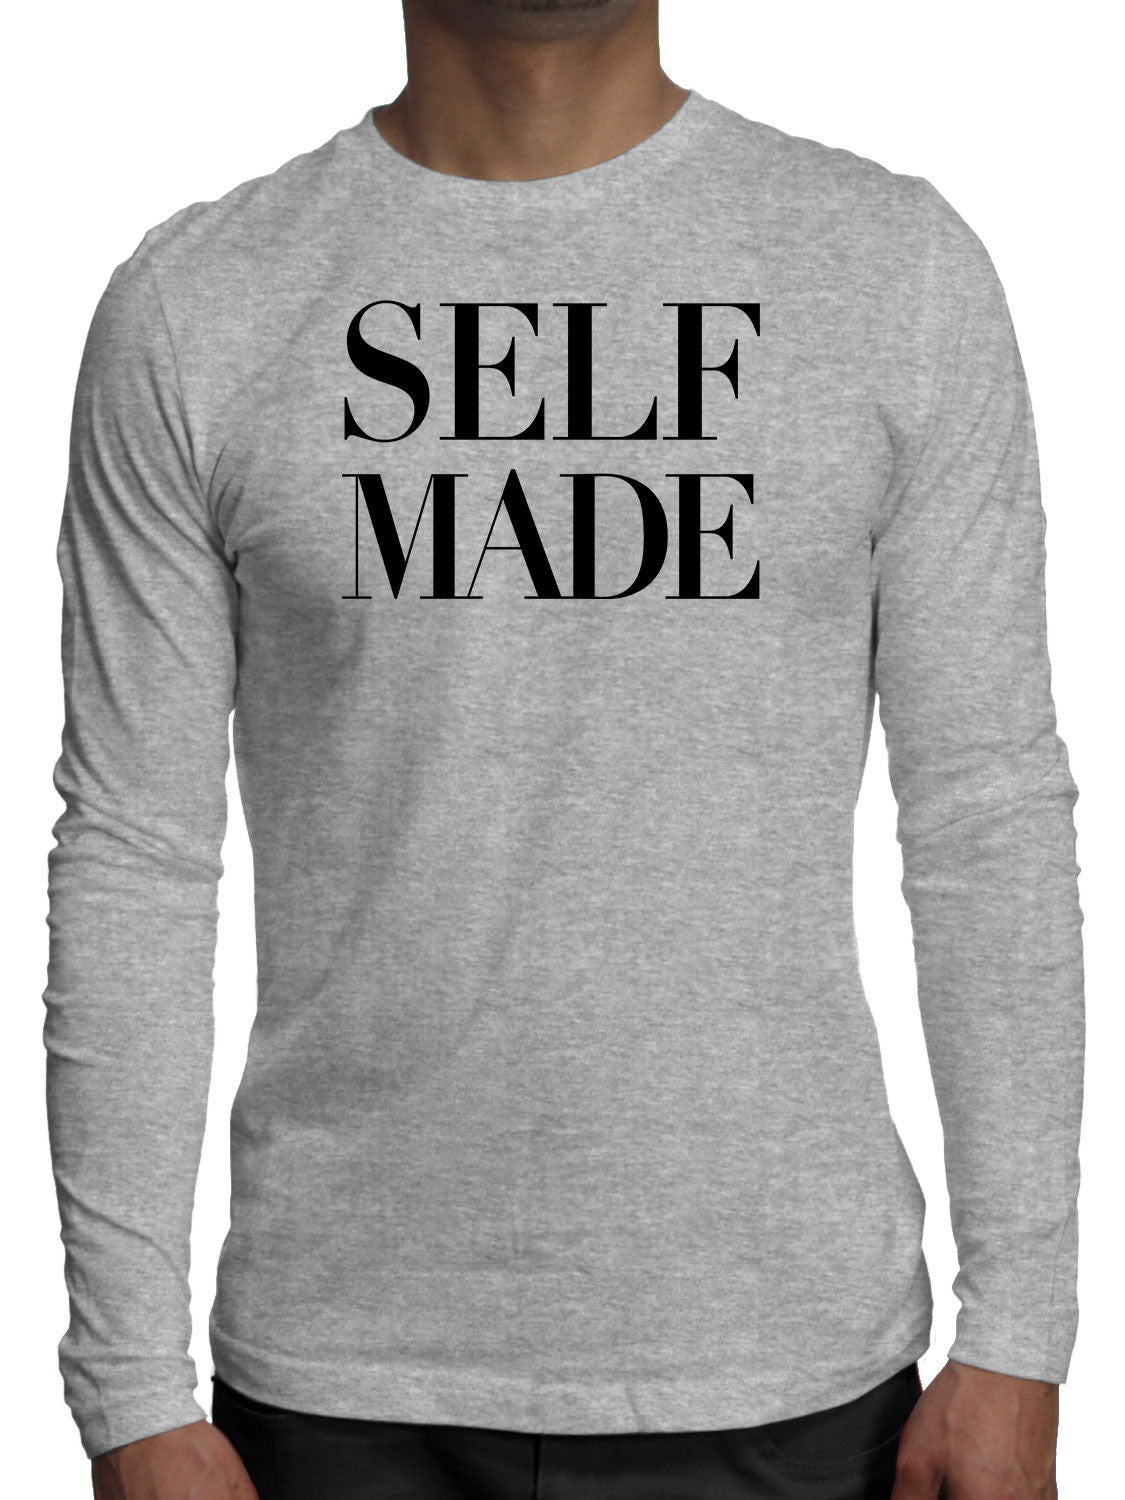 fe2cb62bc Men's SELF MADE BOSS HUSTLER T-Shirt, Tanks & Hoodies – YoungMotto.com